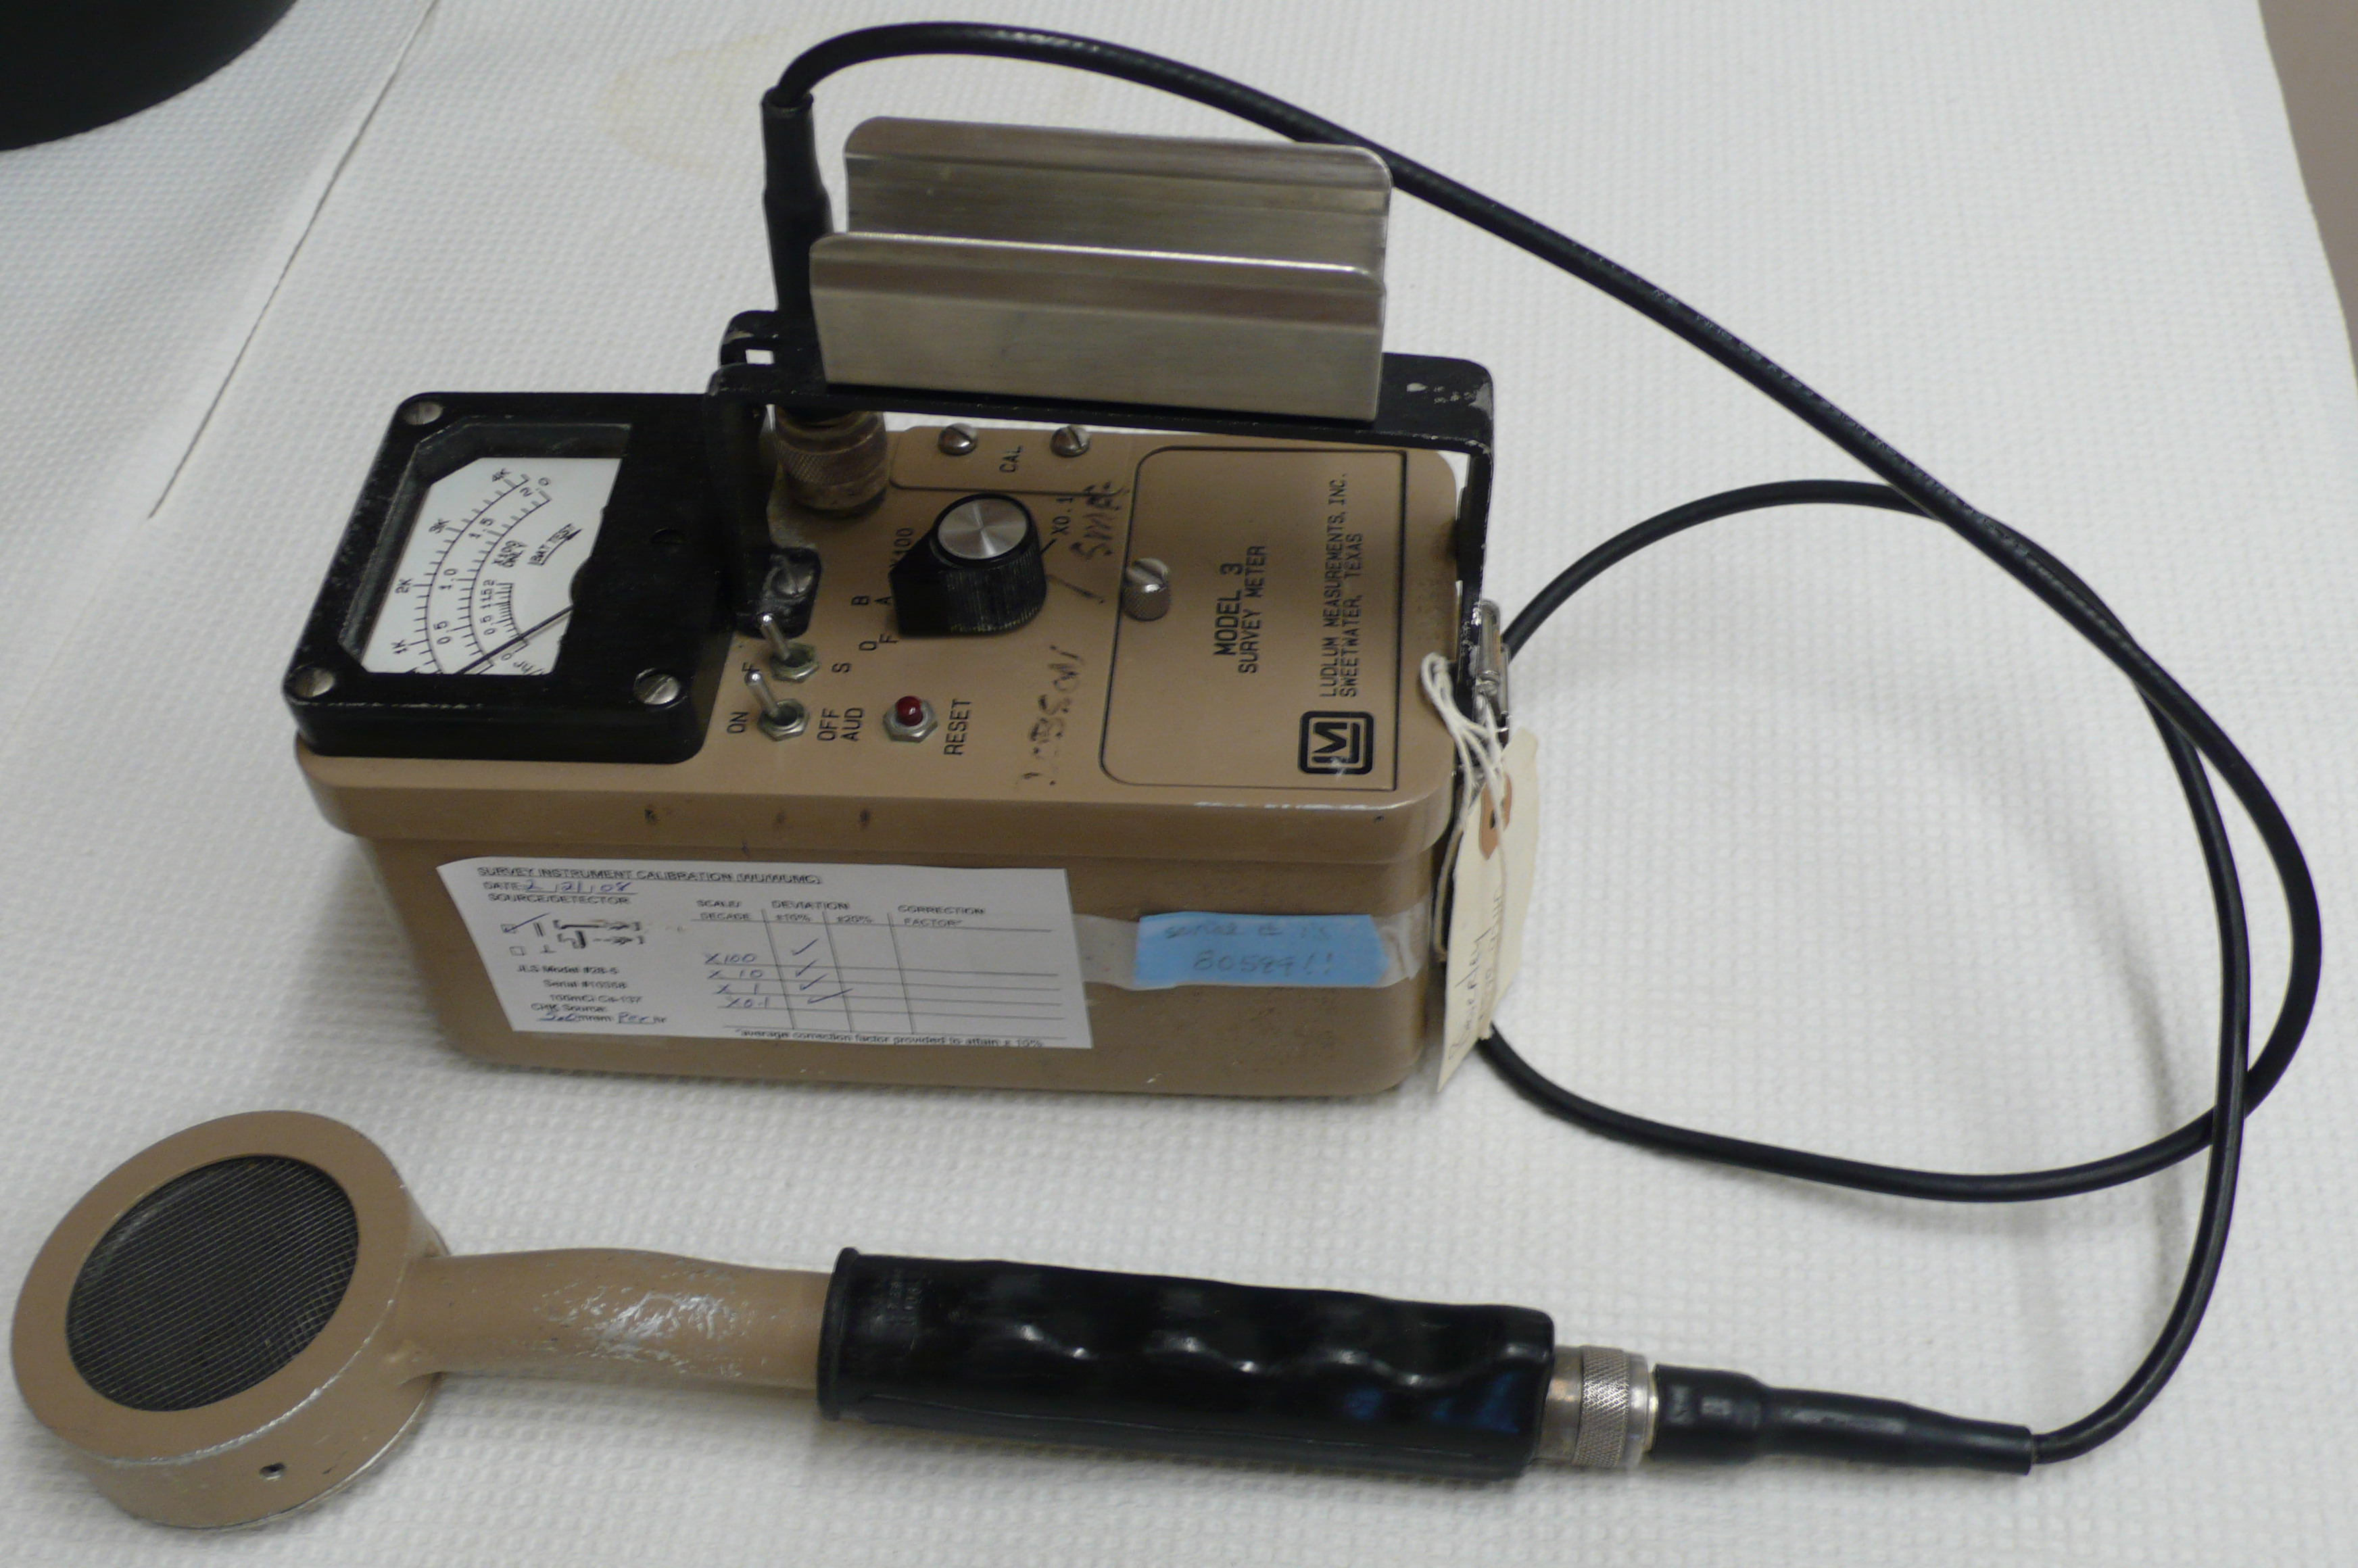 geiger counter \u2013 1908 maglab moreover jahschem disproving dalton likewise introduction to geiger counters a geiger counter geigermuller also geiger counter wikipedia further geiger counter wikiwand. on first invented the geiger counter